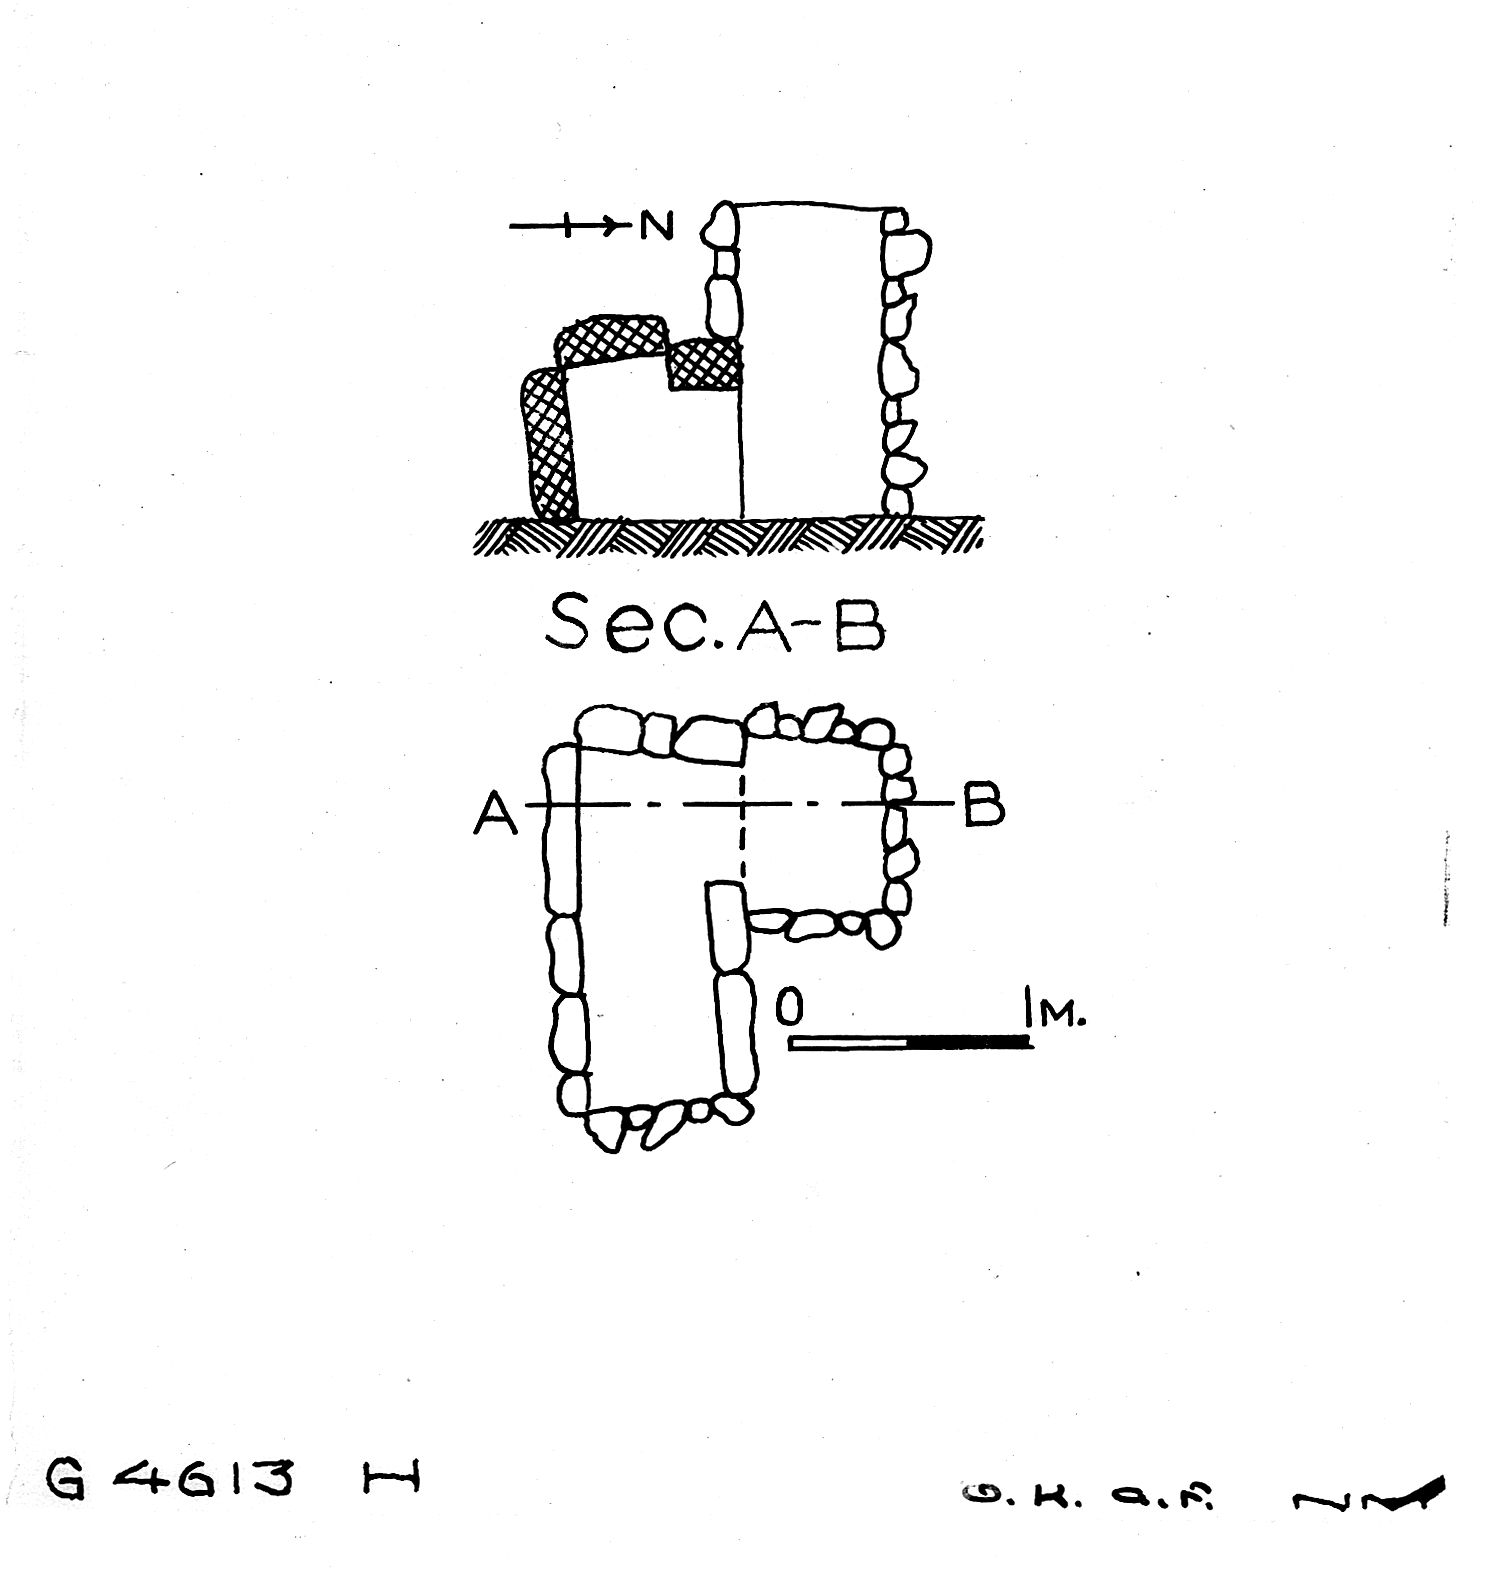 Maps and plans: G 4613, Shaft H